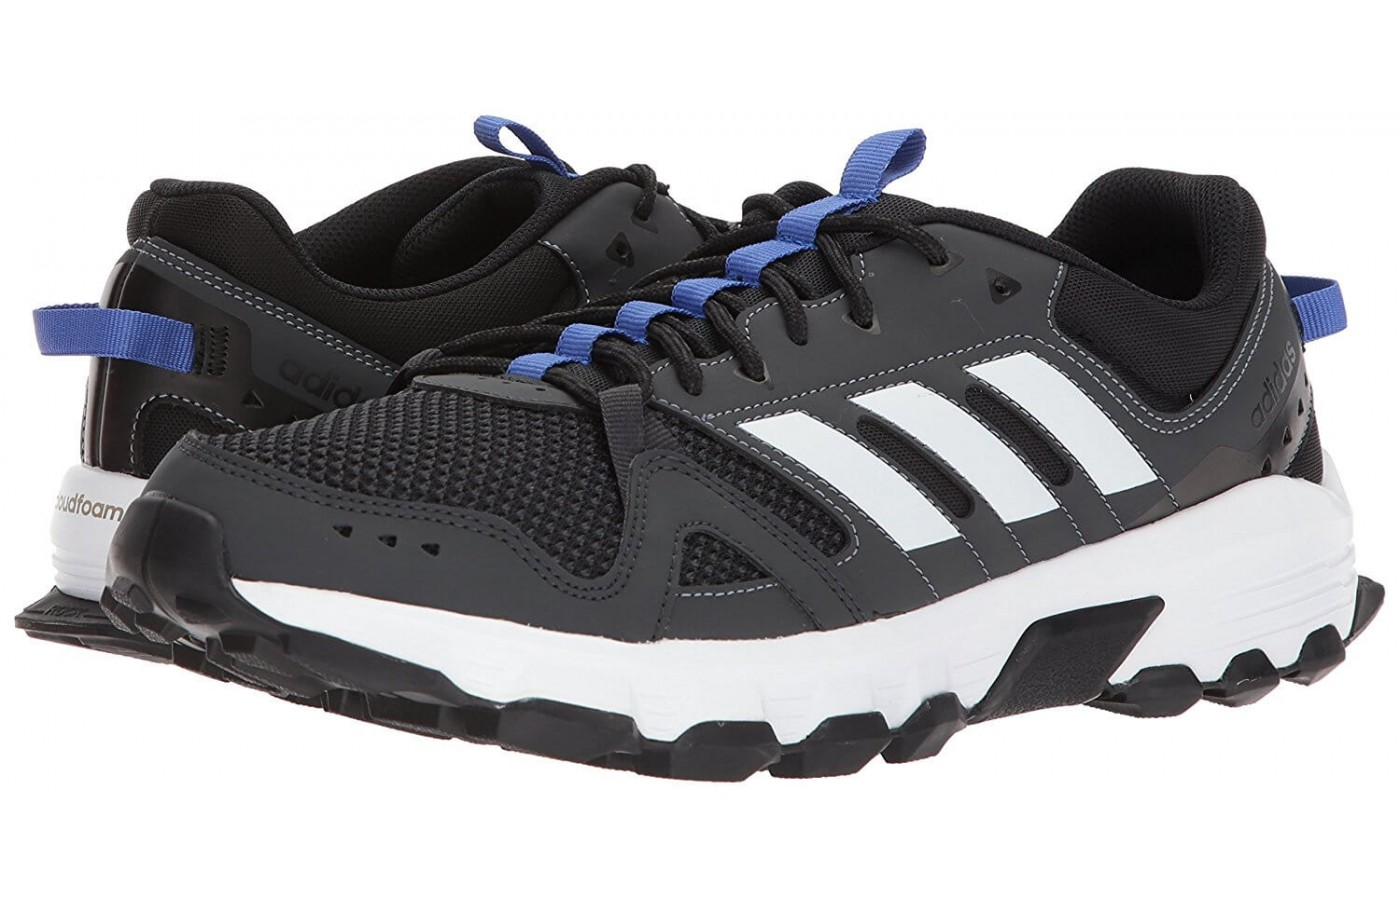 the adidas rockadia trail is ideal for trail runs